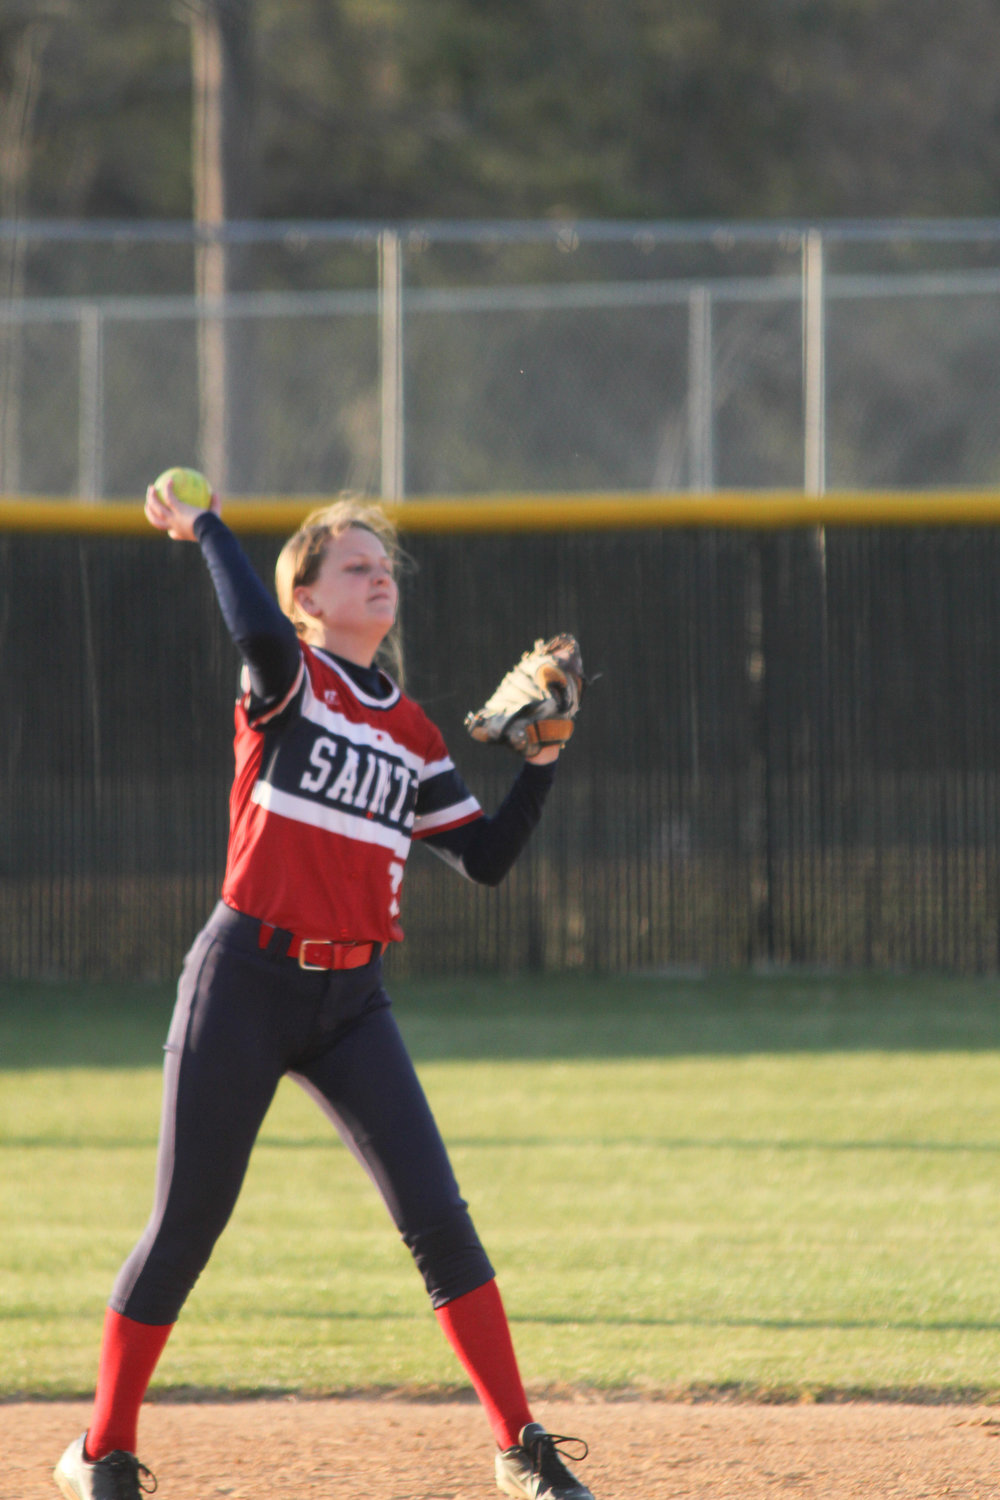 Senior Kayla Raynor throwing to first to pick up an out early on the Saints loss against D.H. Conley